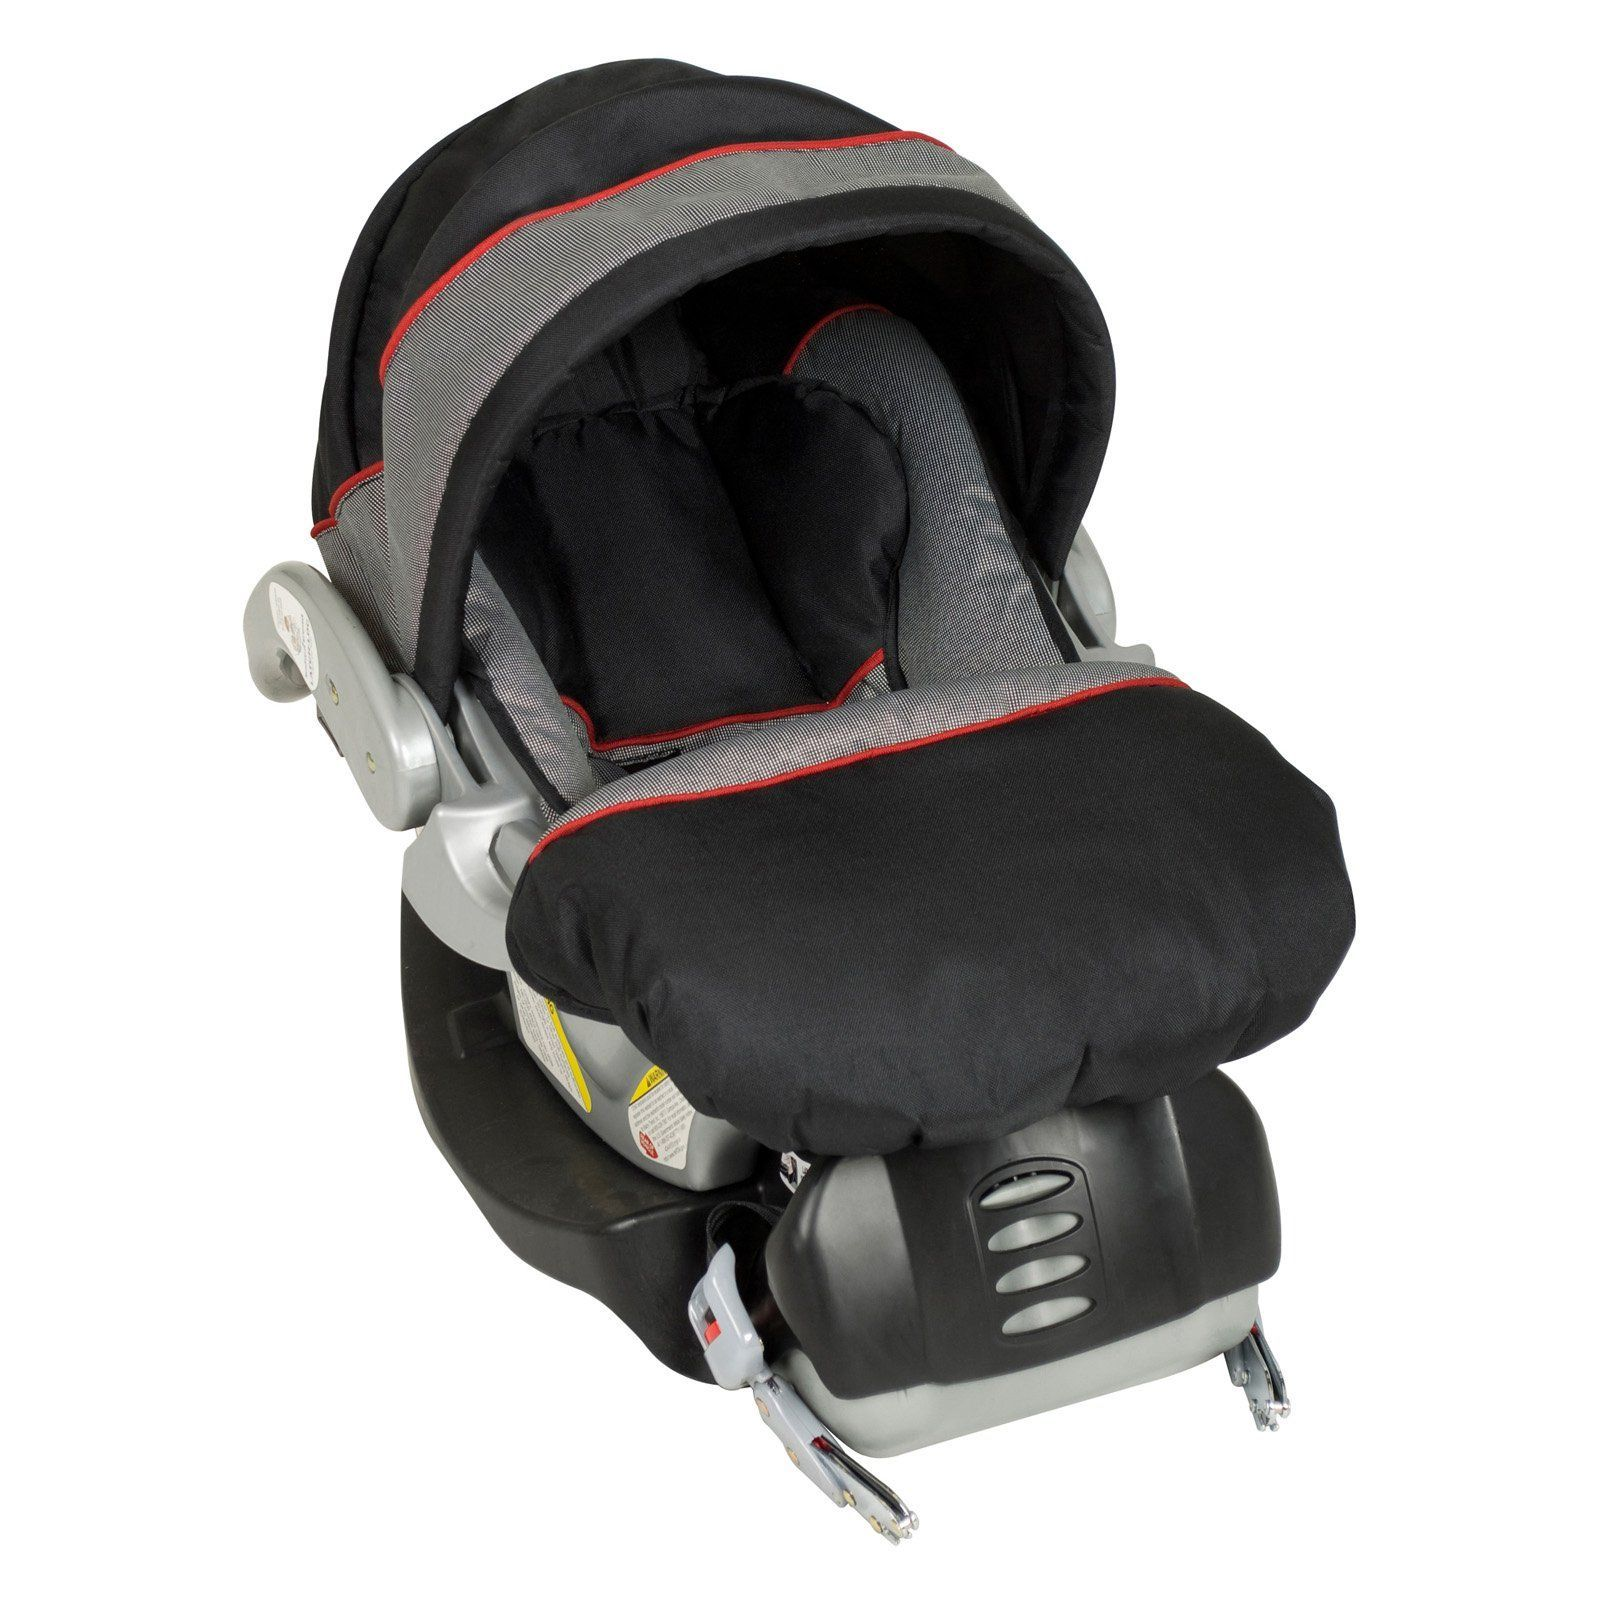 Baby Trend Travel Infant Baby Car Seat Black Belt Strap Harness Vehicle latch.